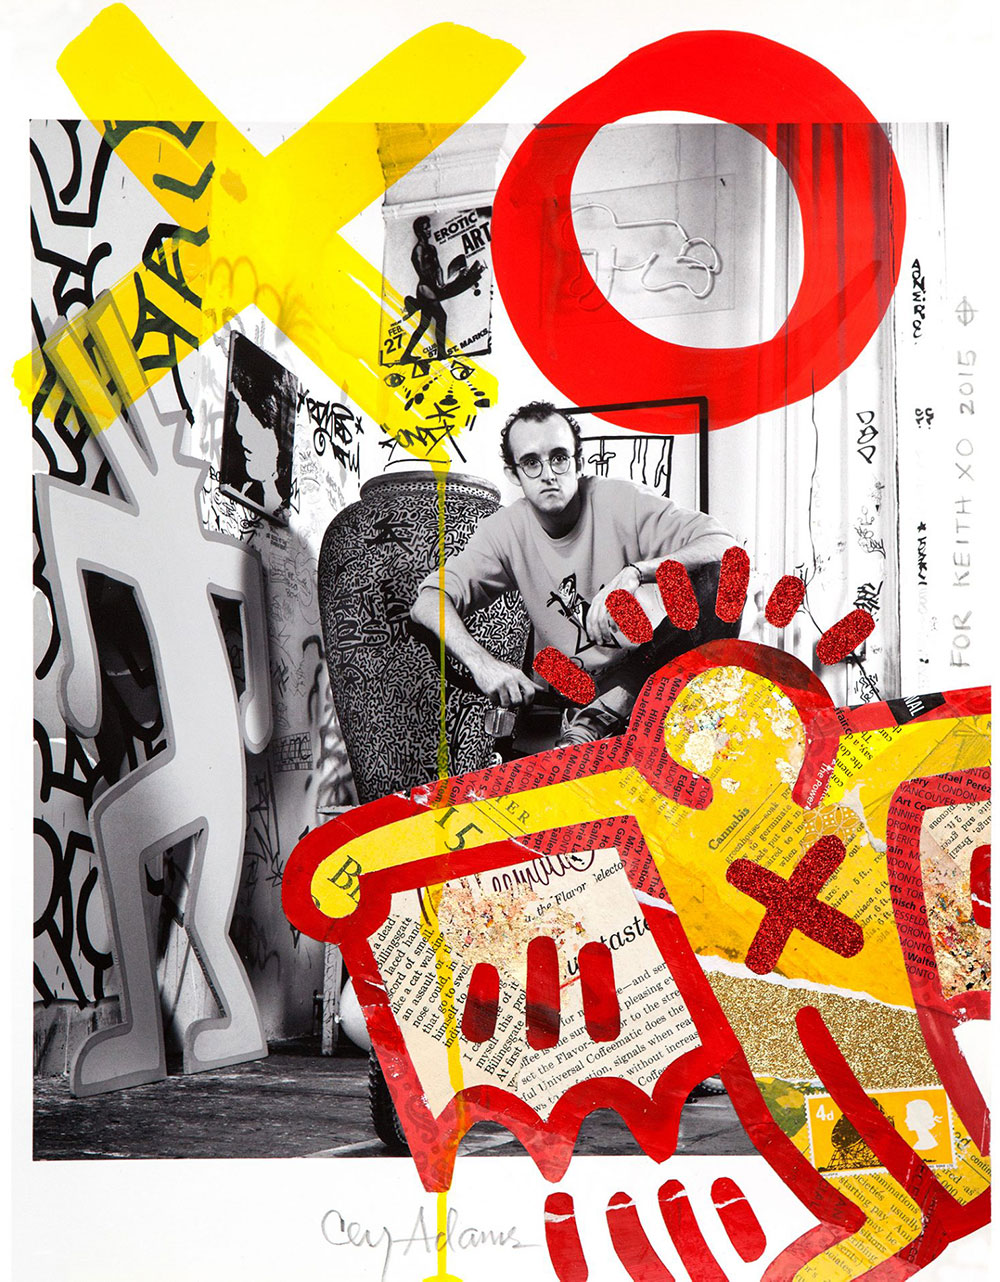 The Mash-Up, Keith Haring | Janette Beckman x Cey Adams